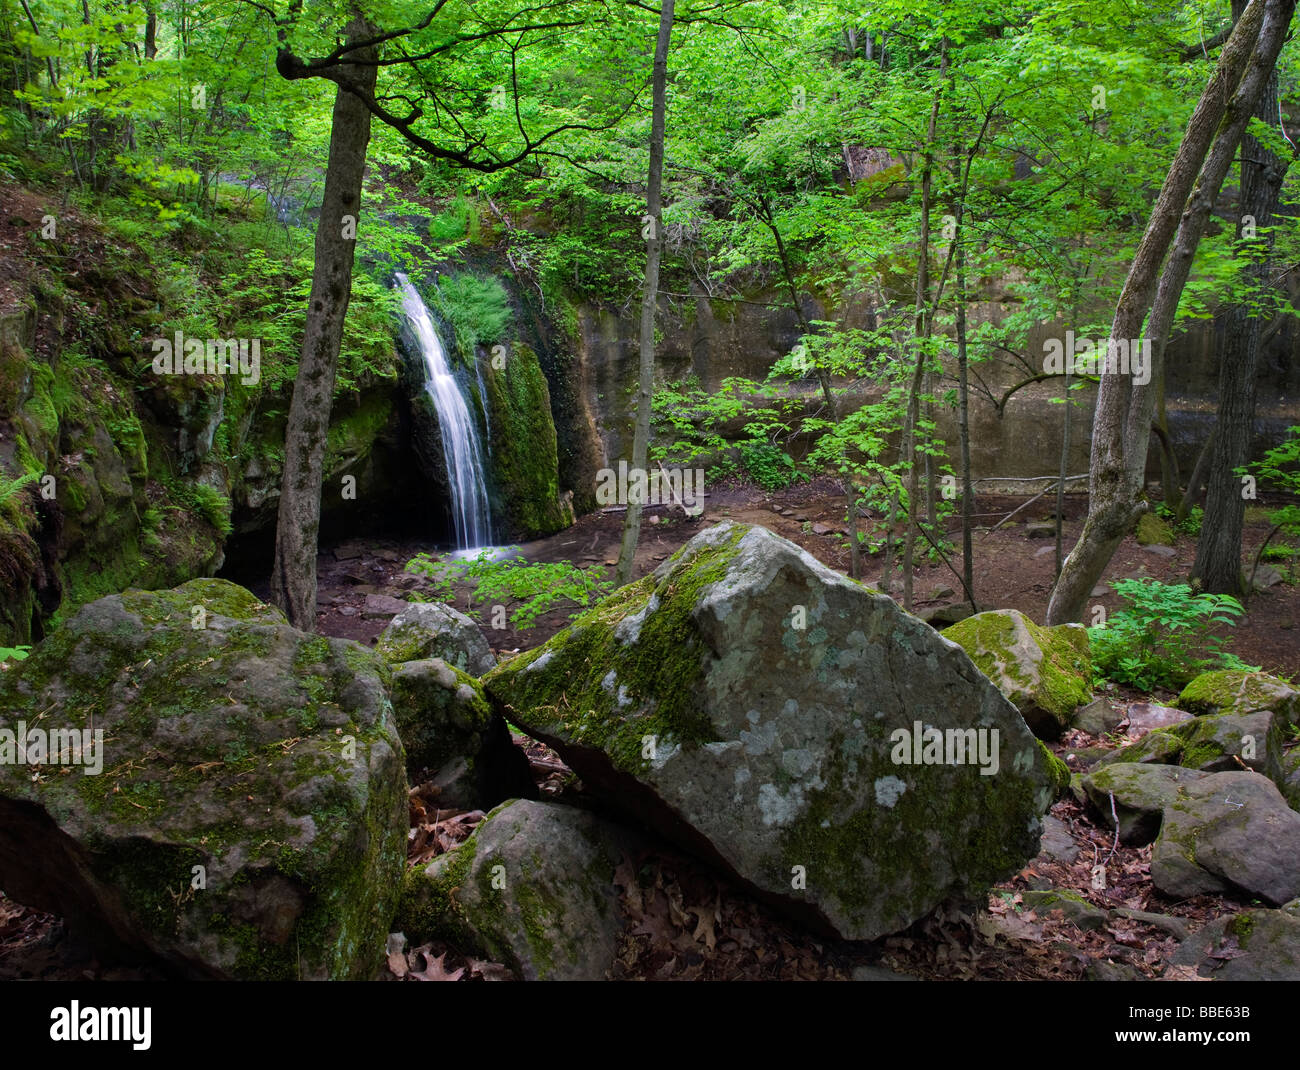 Stephens Falls, Governor Dodge State Park, Wisconsin - Stock Image